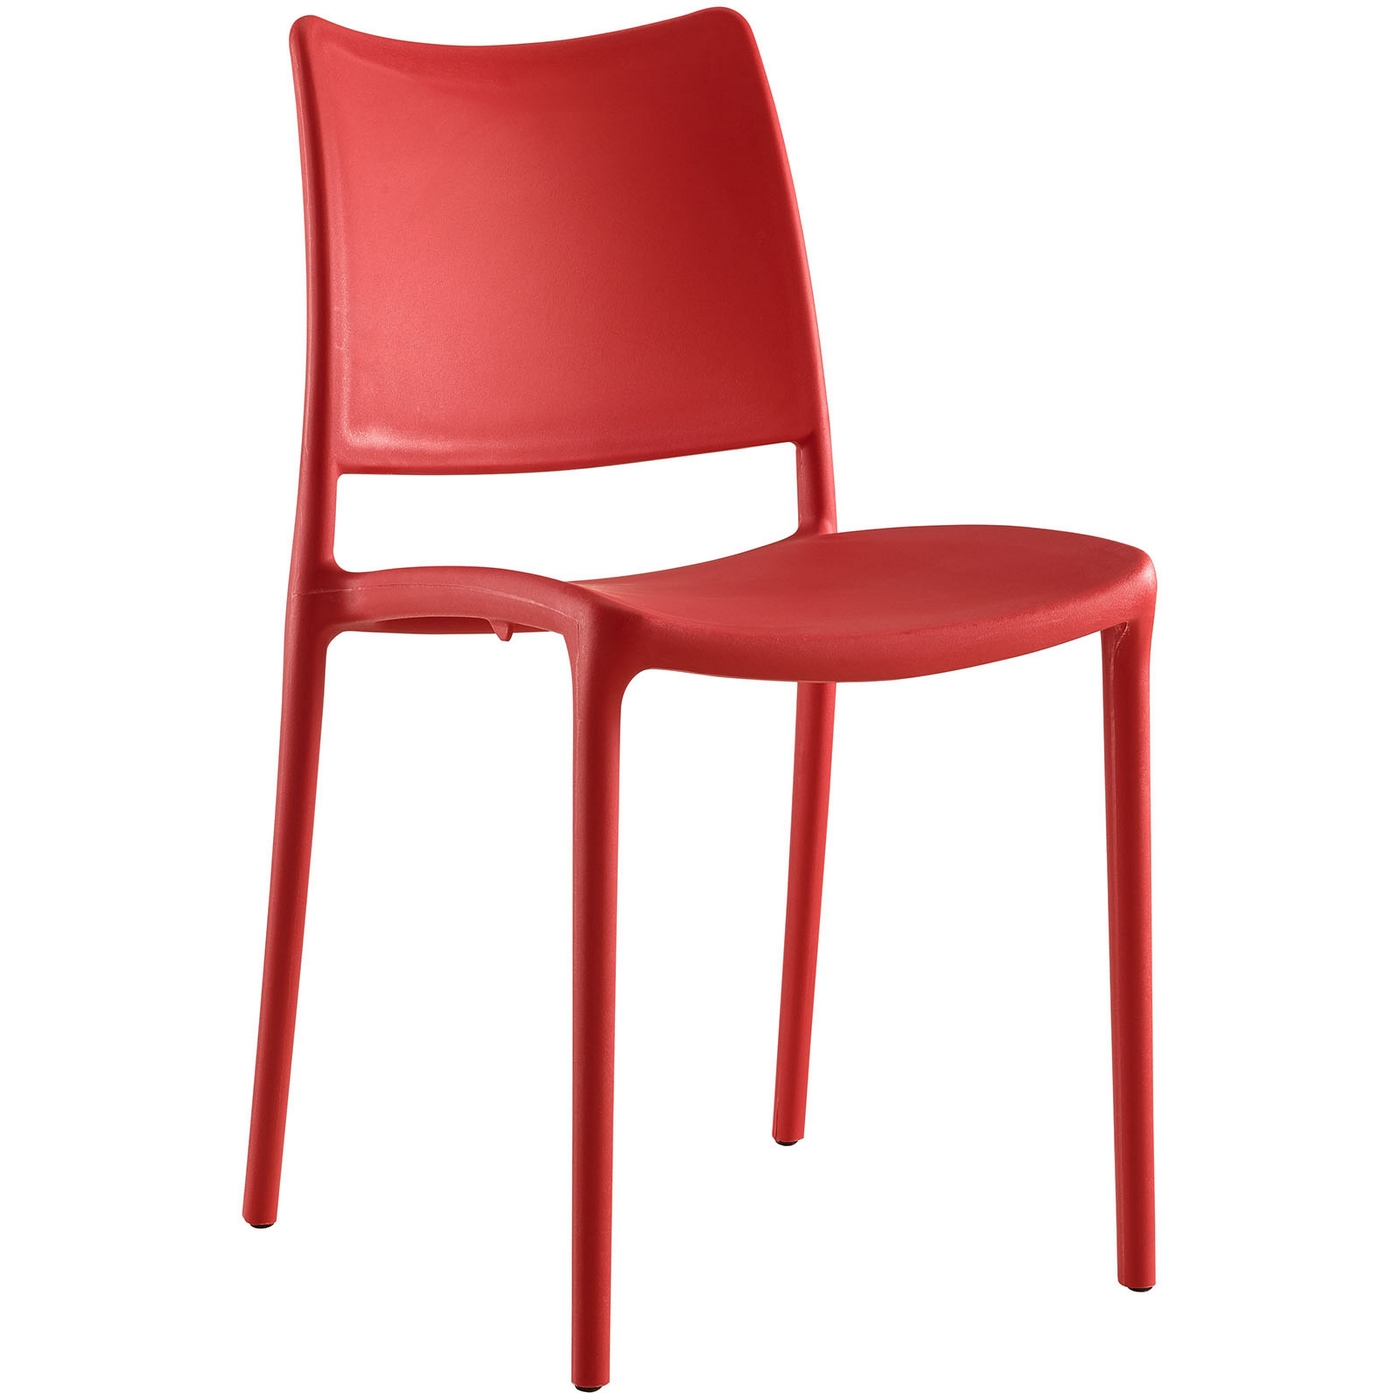 Hipster Contemporary Stackable Plastic Dining Side Chair Red